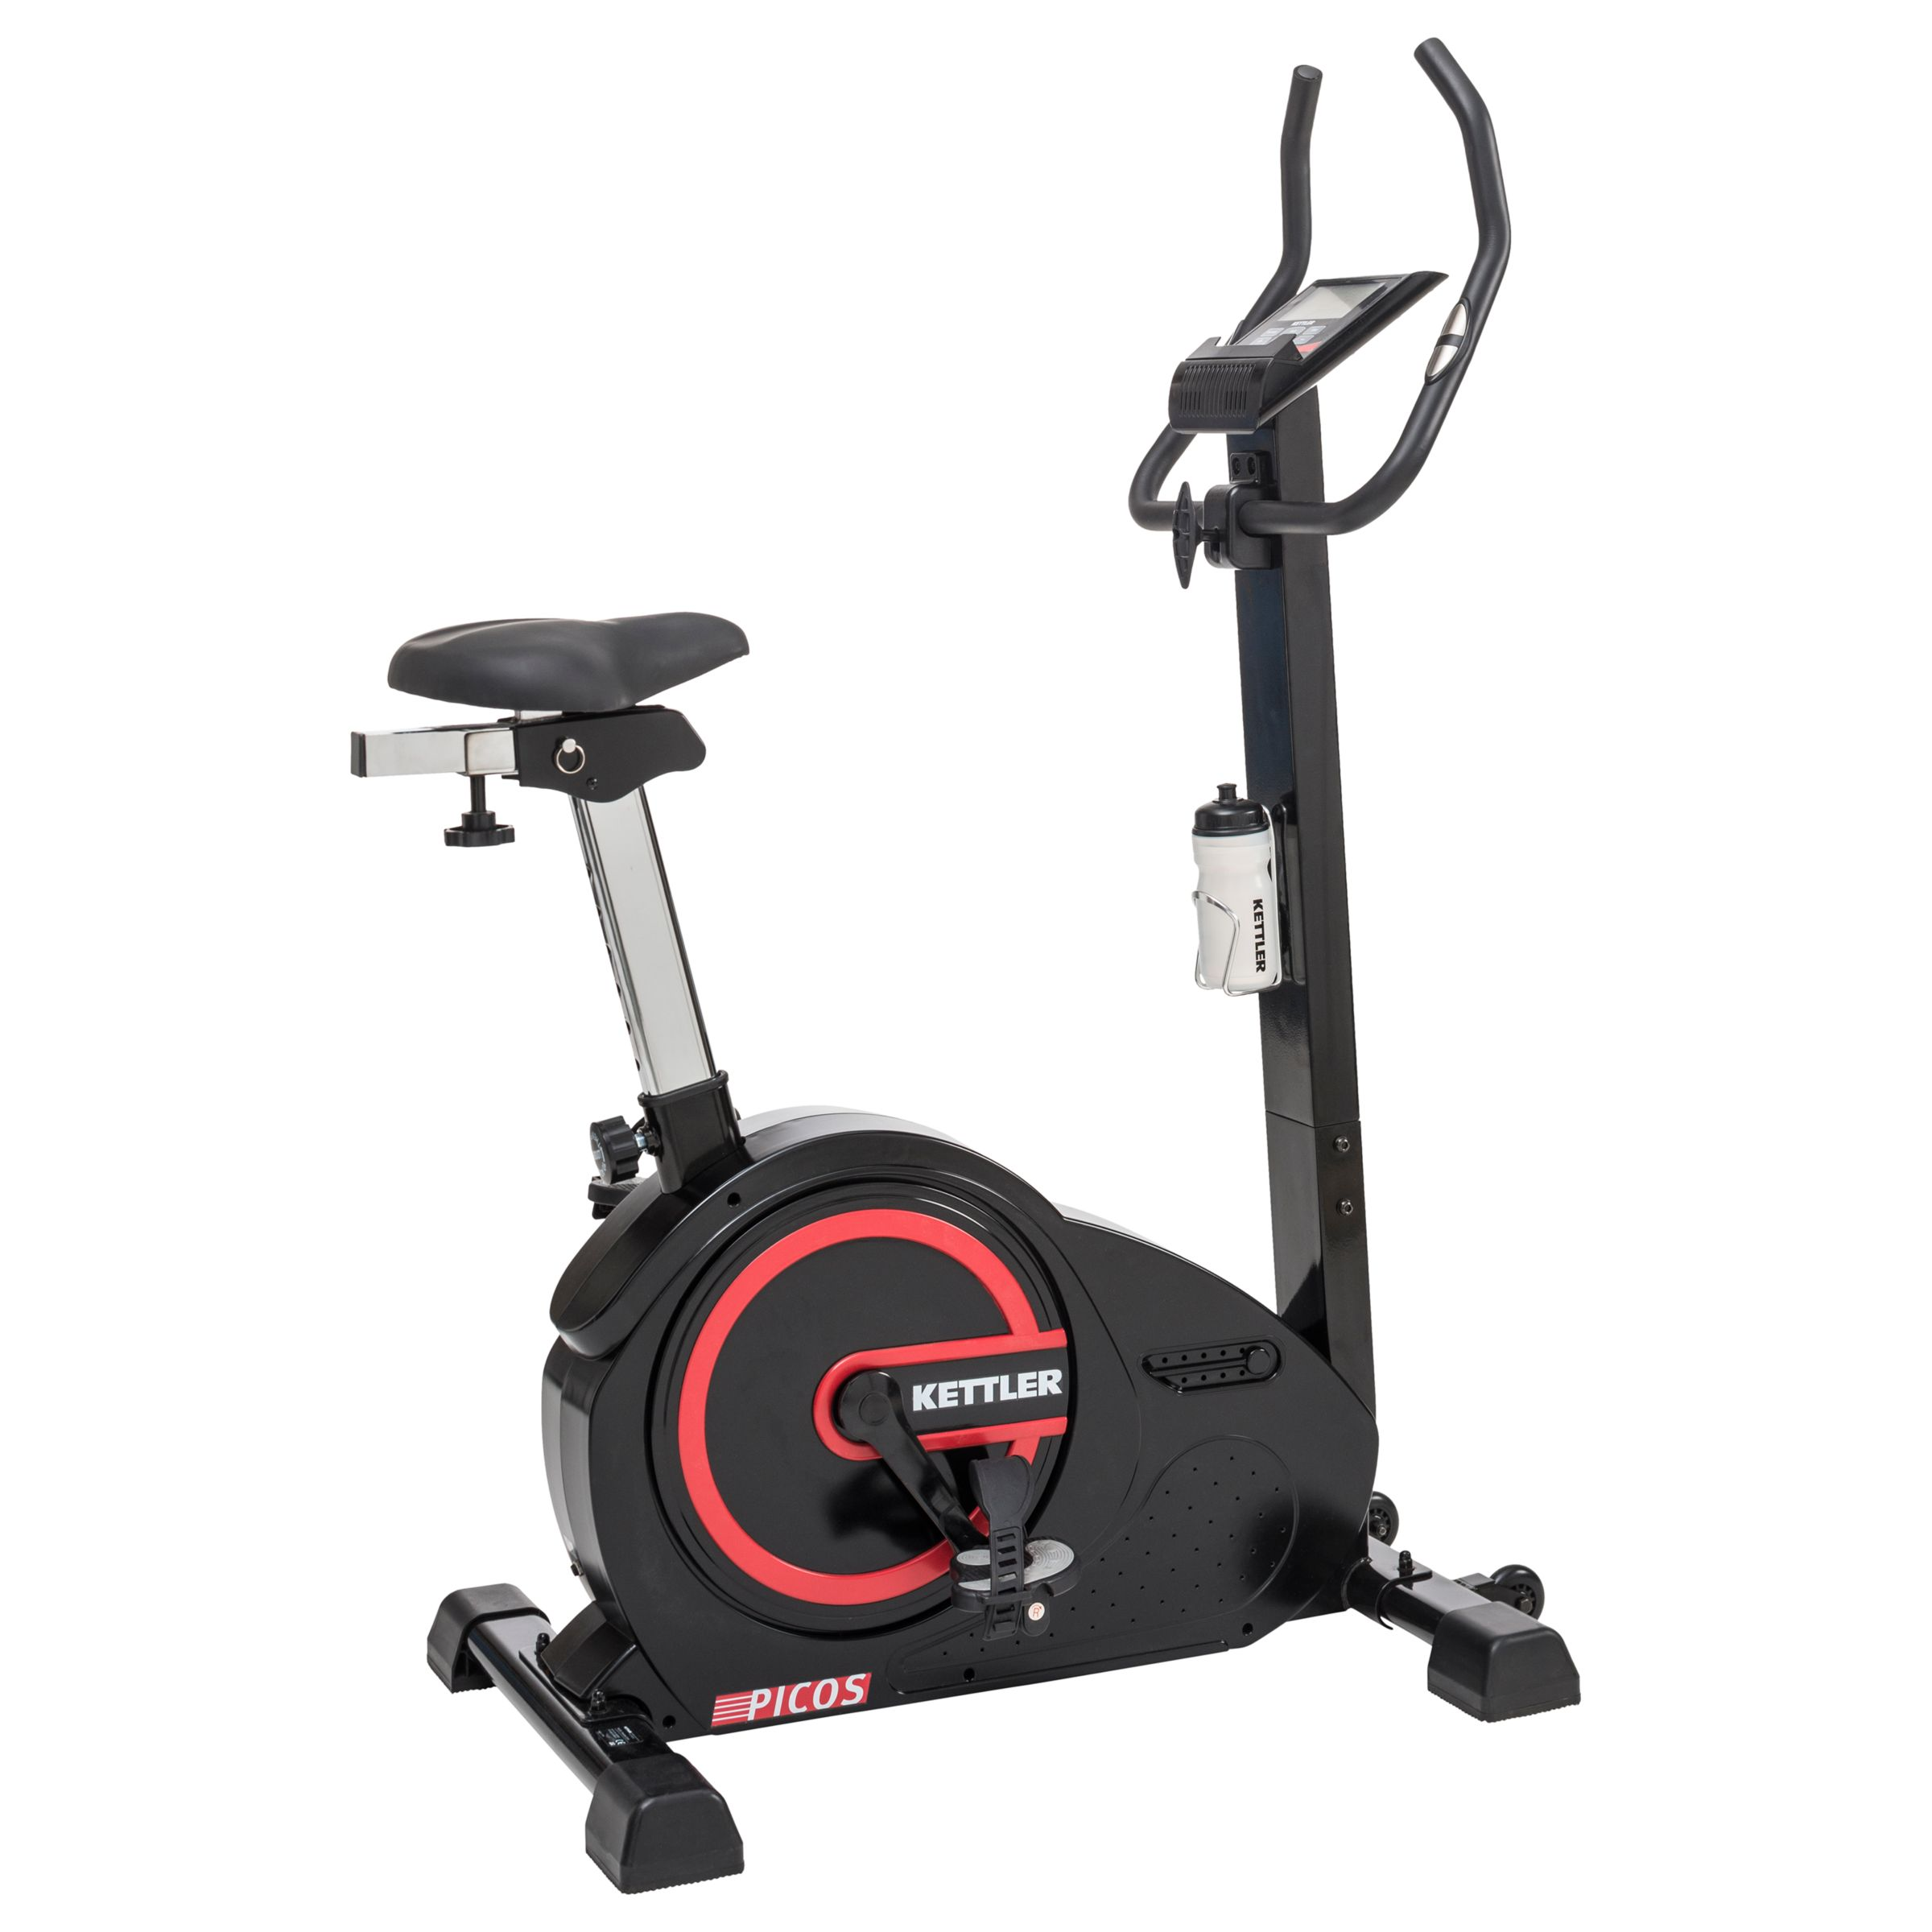 Kettler Fitness Kettler Sport Picos Exercise Bike Black Red